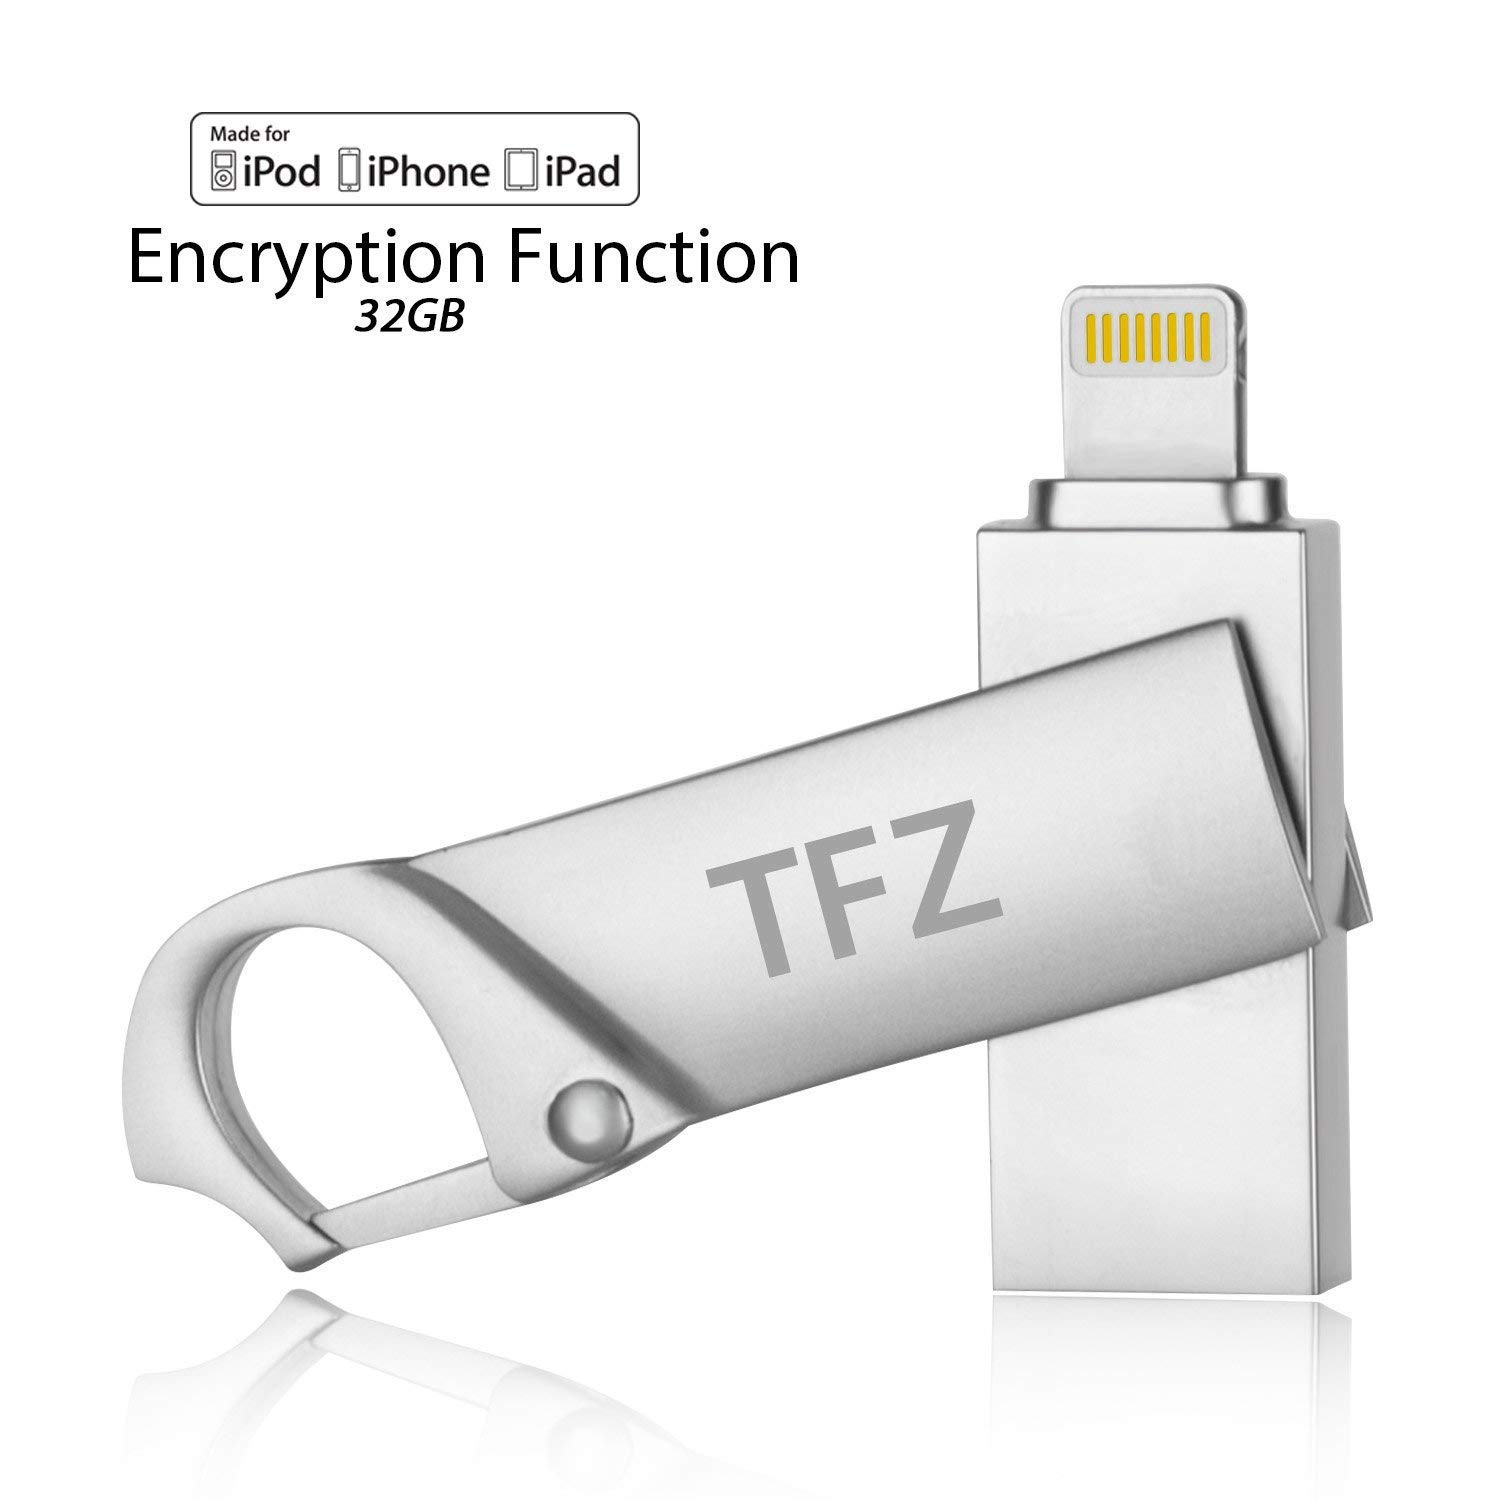 i Flash Drive USB Memory Expansion Stick 32GB [Apple MFI Certified] TFZ  High Speed Pen Drive External Storage For Apple iPhone iPad Mac PC and iOS